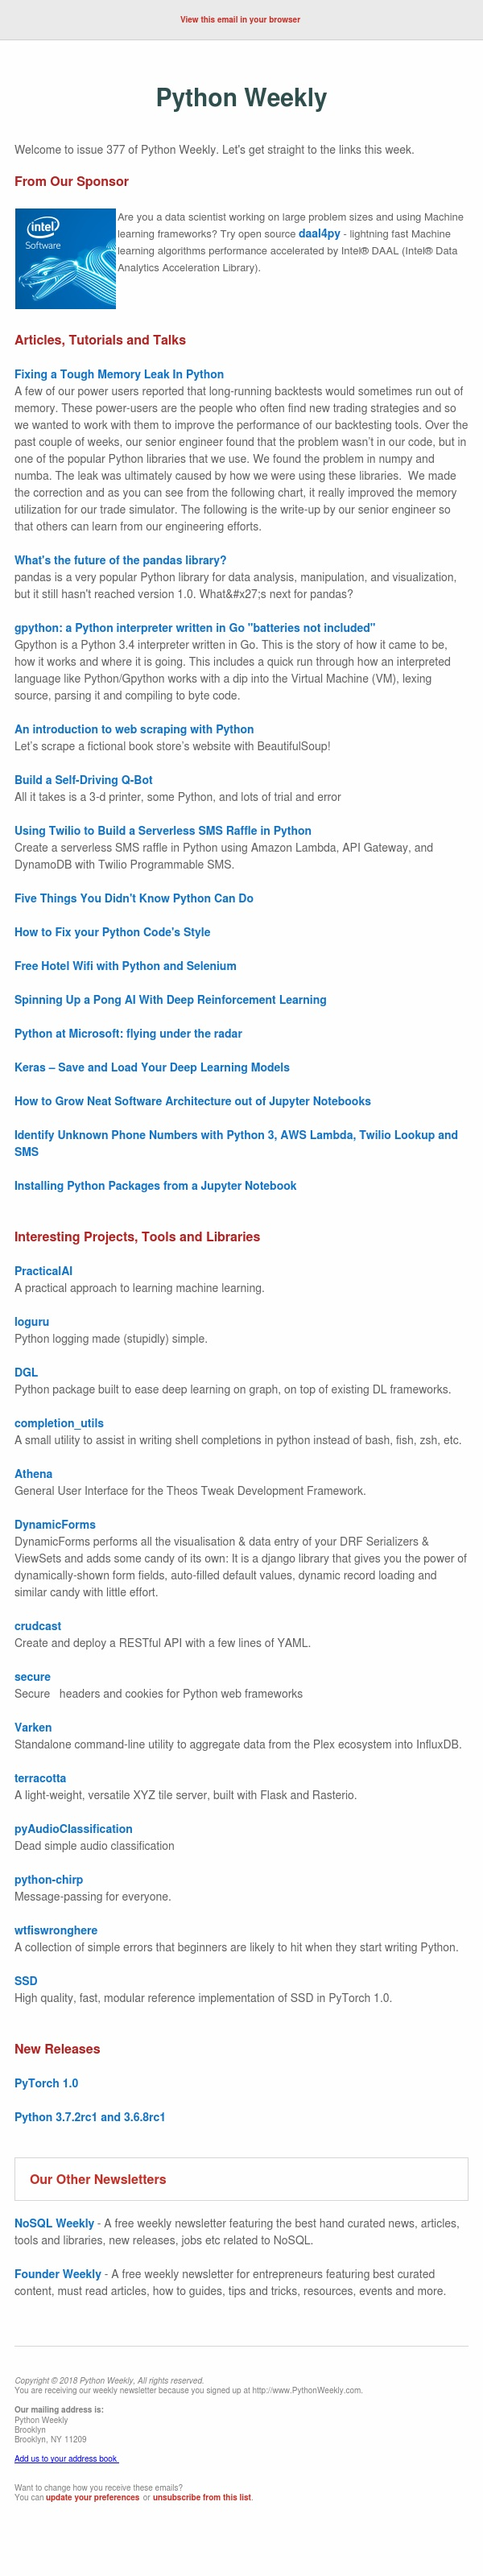 Python Weekly - Issue 377